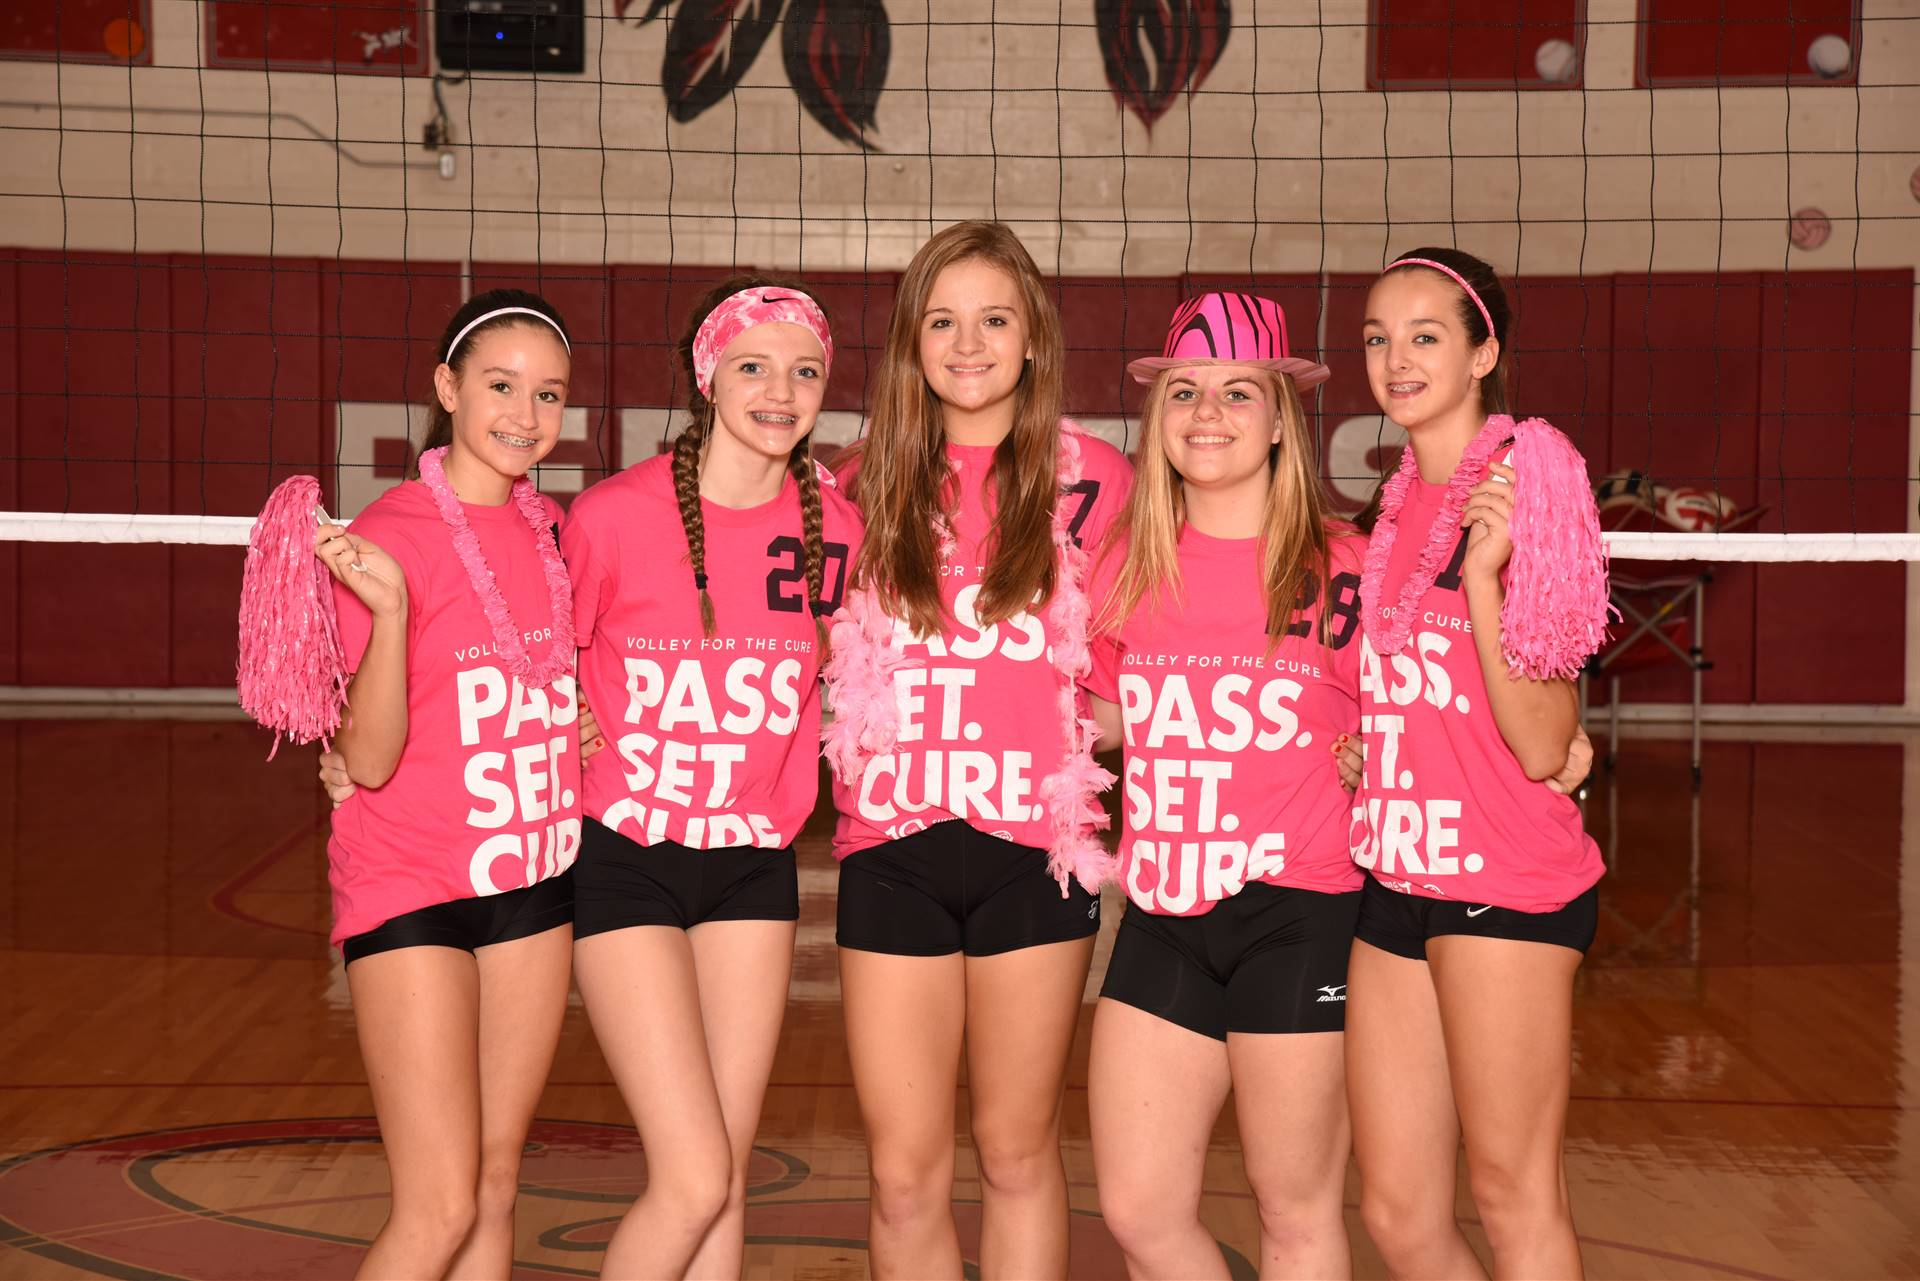 Arcadia High School Volley for the Cure